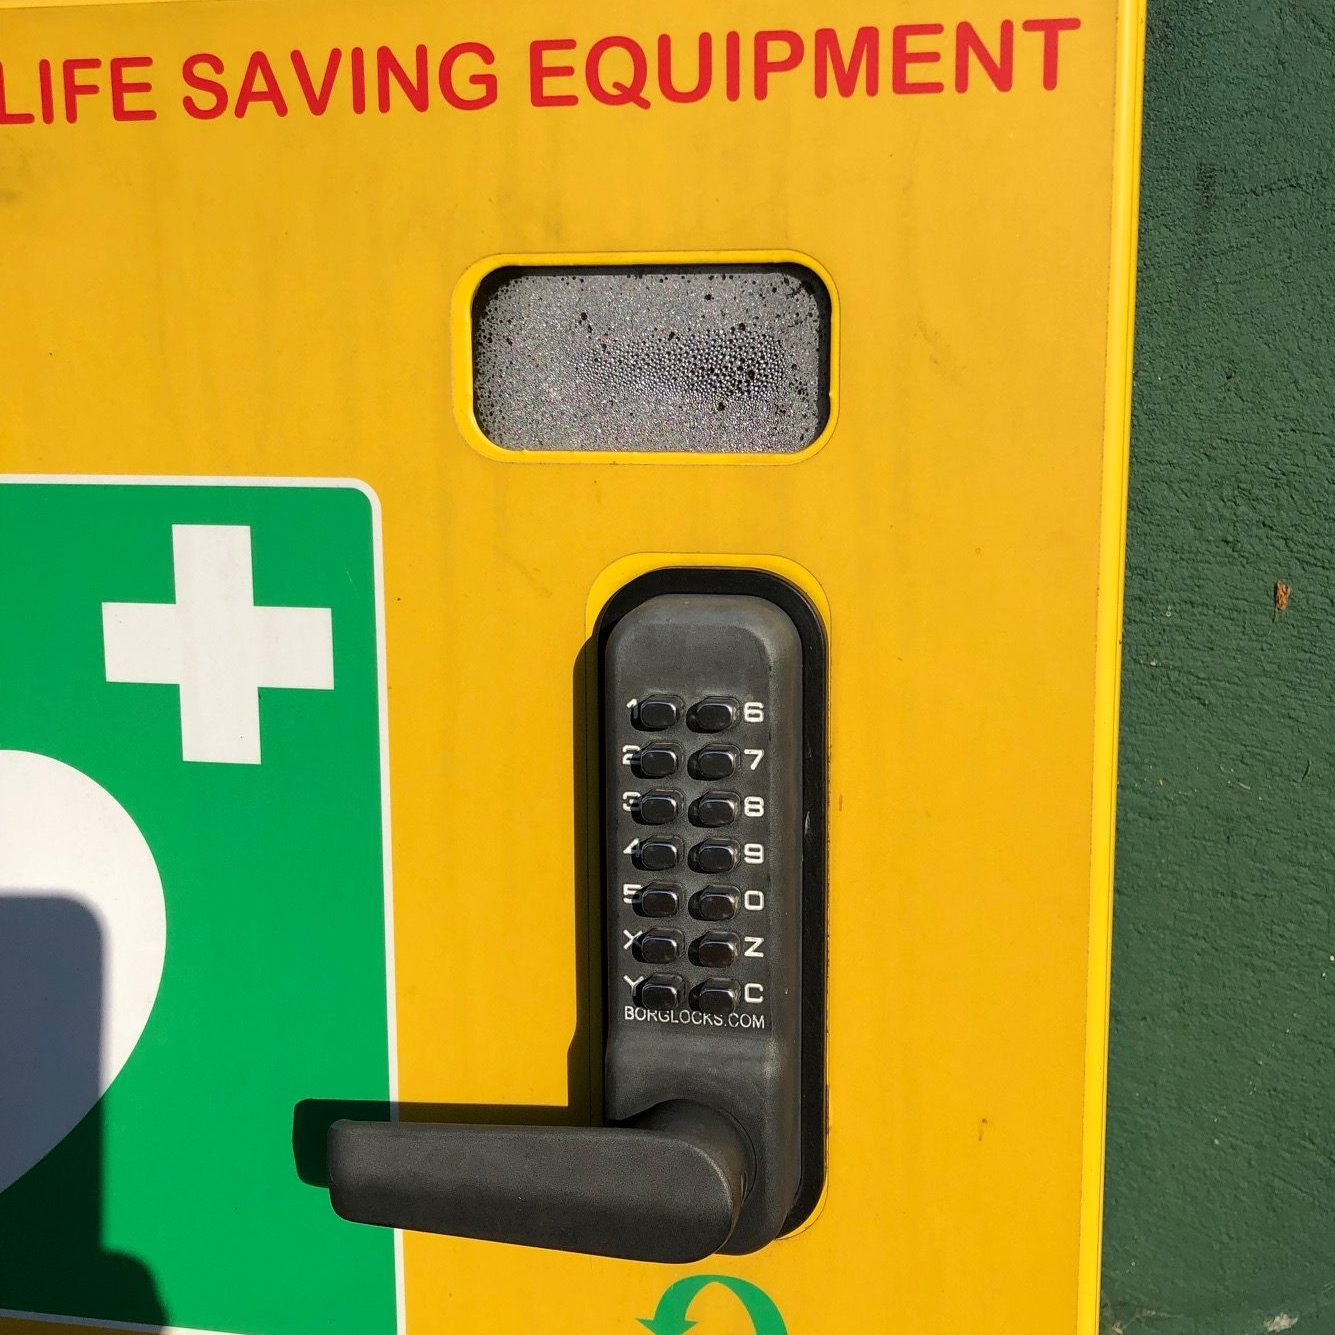 Check your defib cabinet! 3